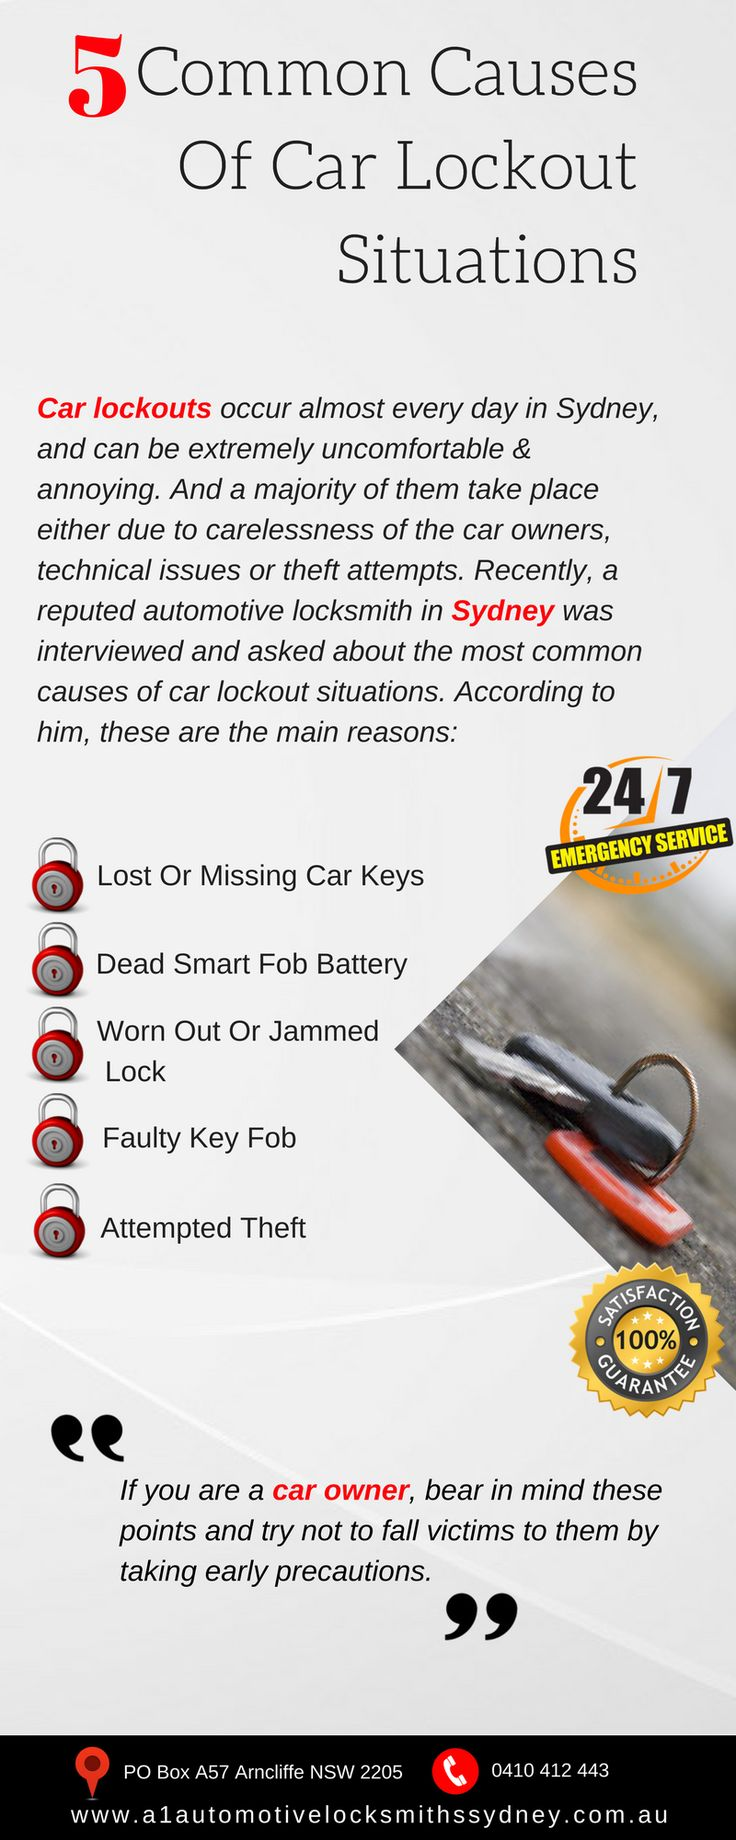 Car owners who have been in lockout situations before would know how troublesome it can be. Here we going to enumerate the top causes for common car lockout scenarios. #lostcarkey #locksmith #automotivelocksmith #mobileautomotive #sydney